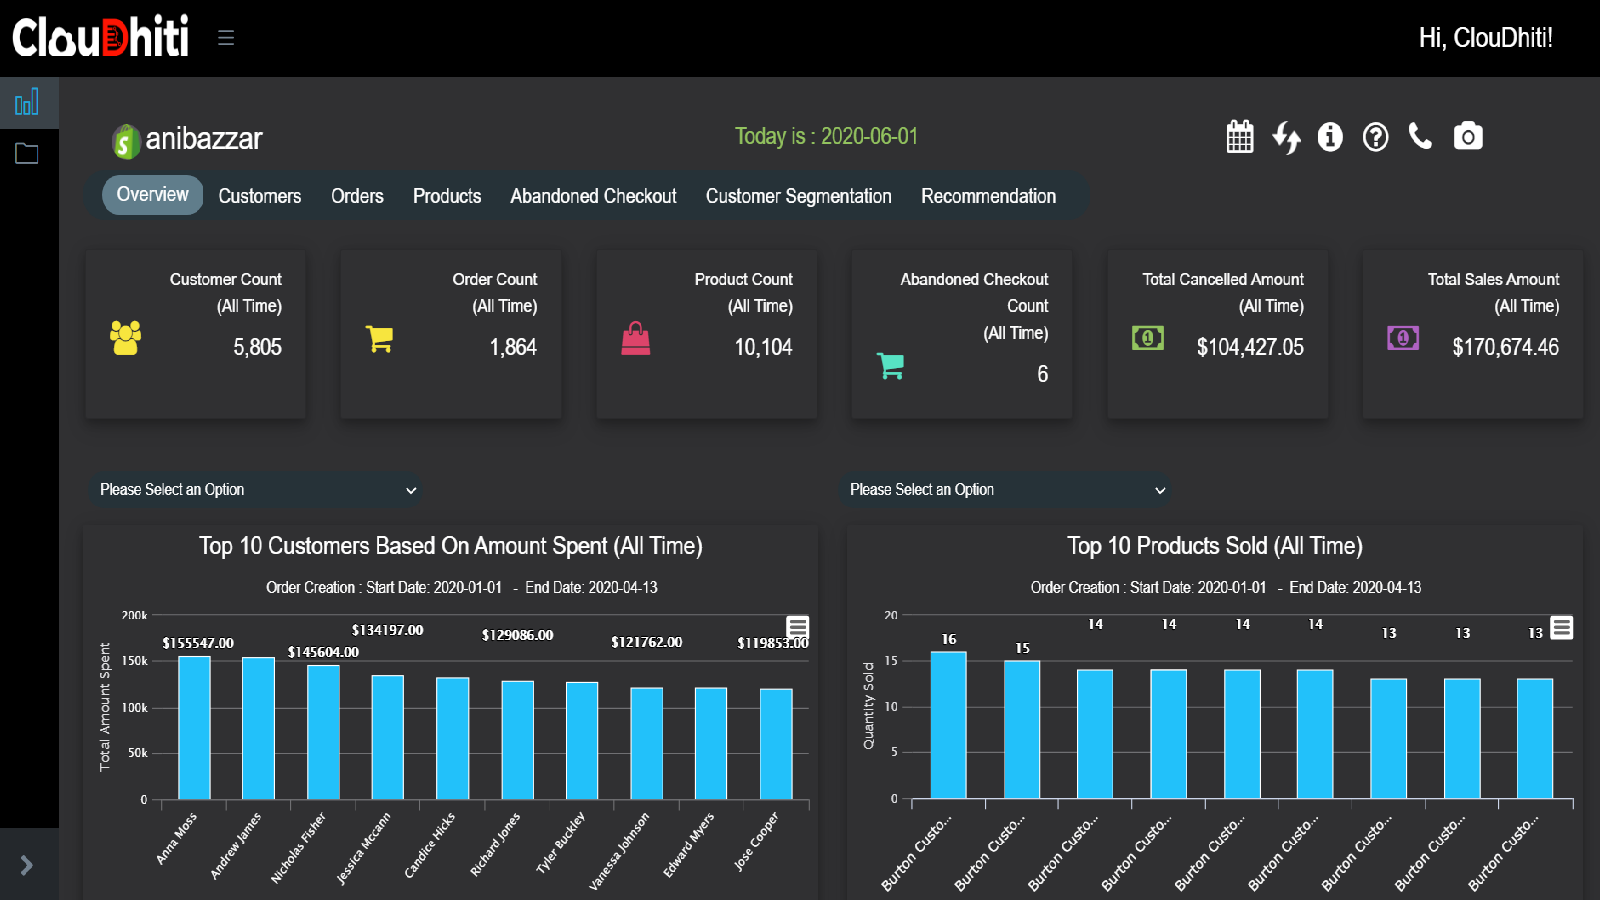 Store AI Analytics - Know Your Customers